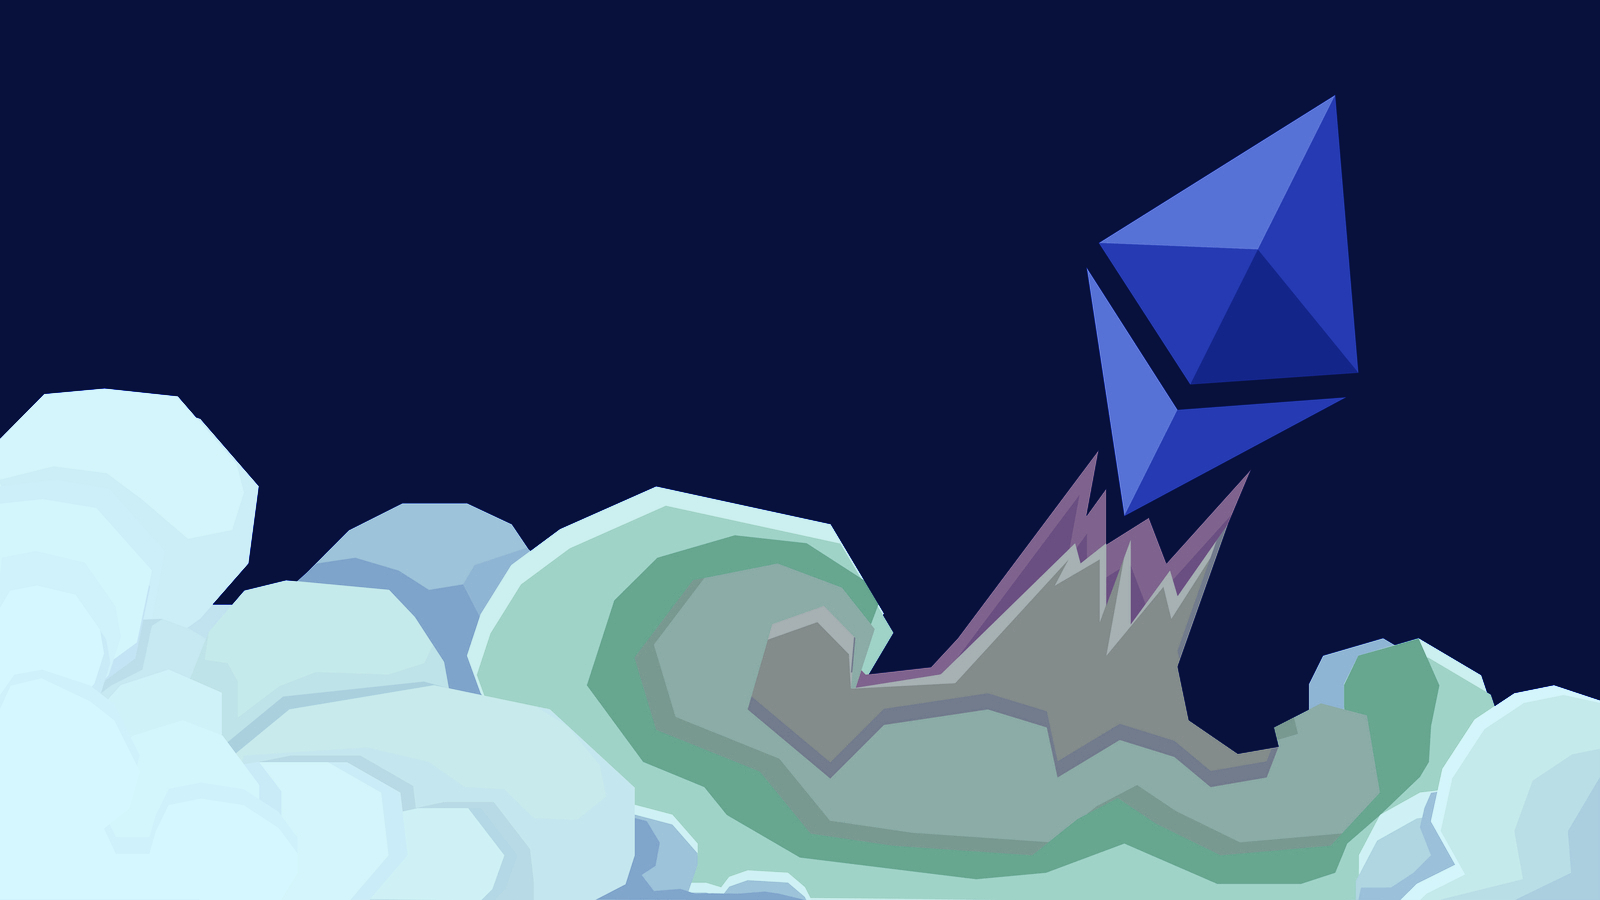 Ethereum Dapp Volumes Hit $120 Billion in Third Quarter - Decrypt